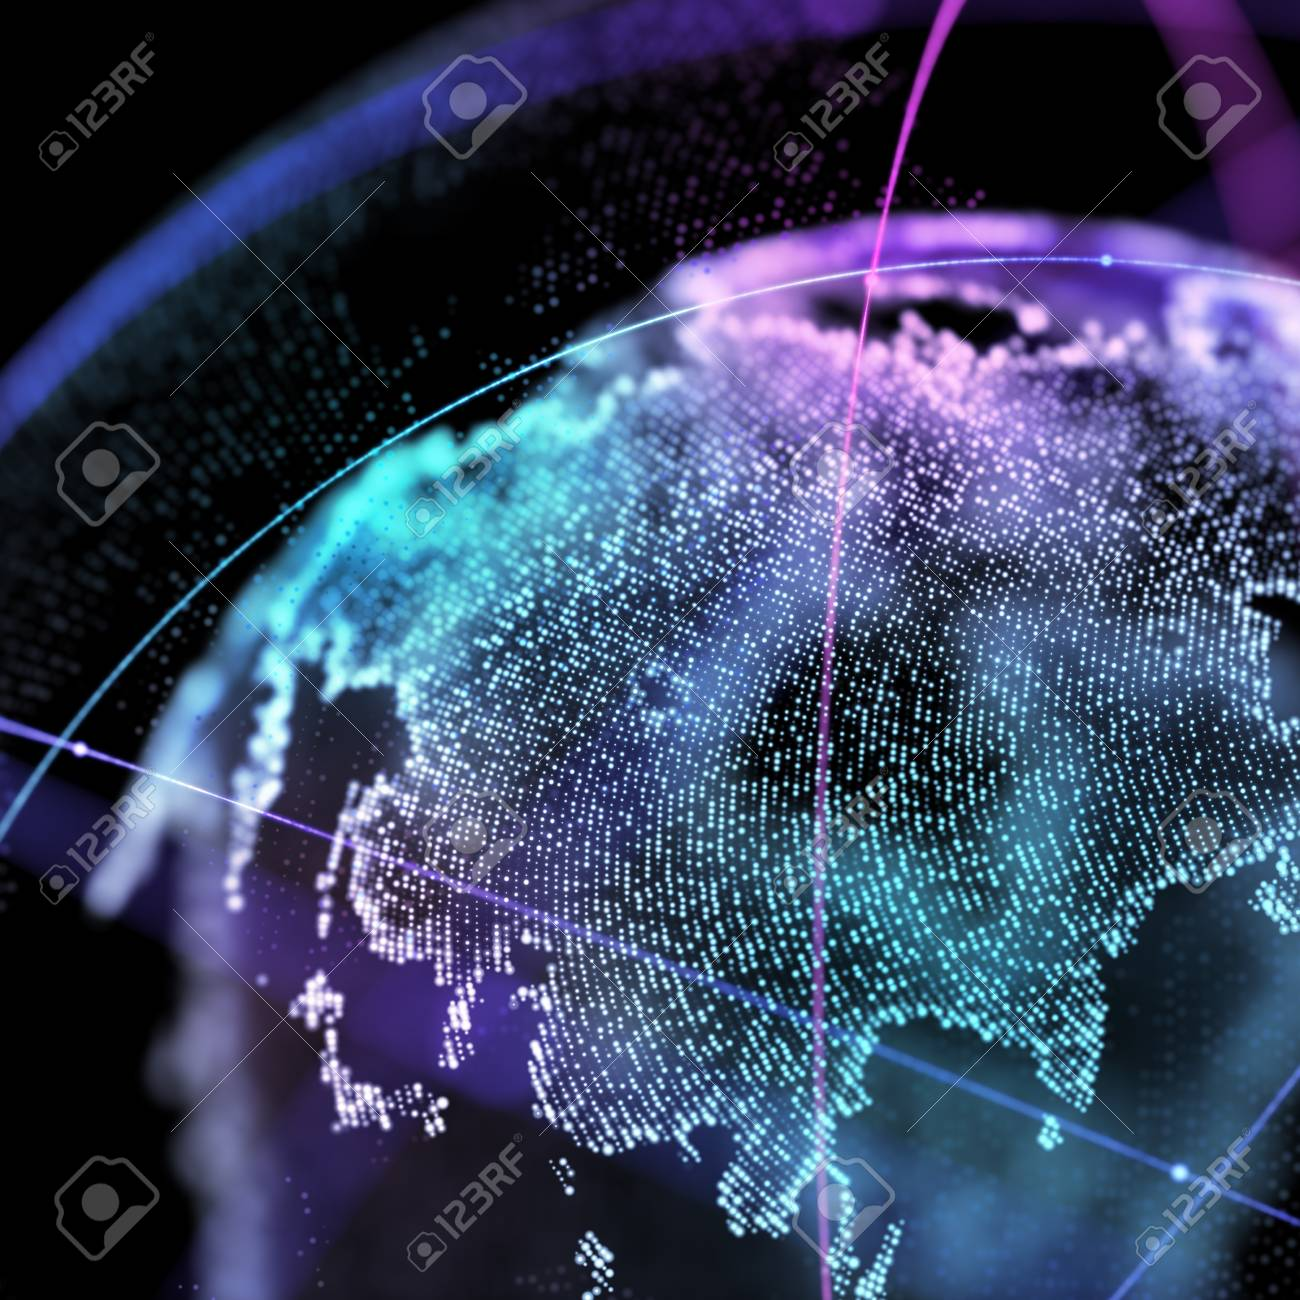 Connections global communication orbits in the world map view connections global communication orbits in the world map view on dark space background 3d illustration gumiabroncs Gallery